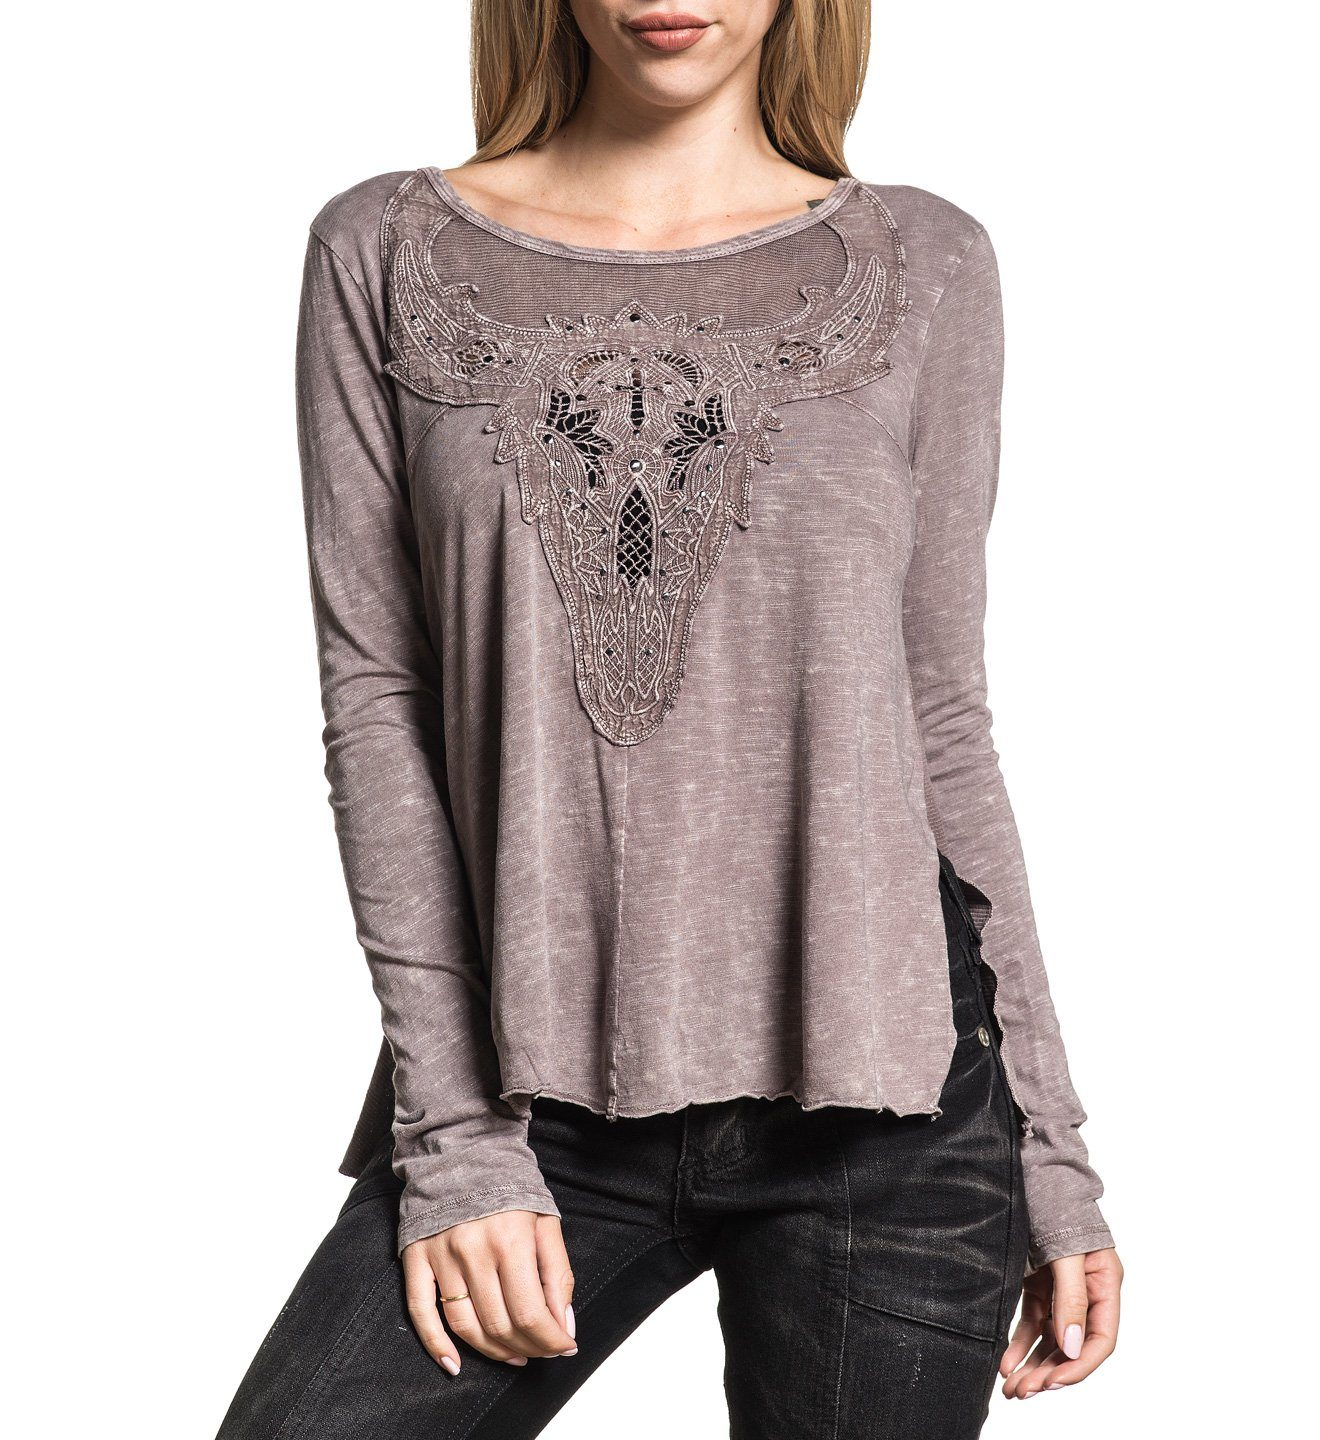 Womens Long Sleeve Tees - Antler